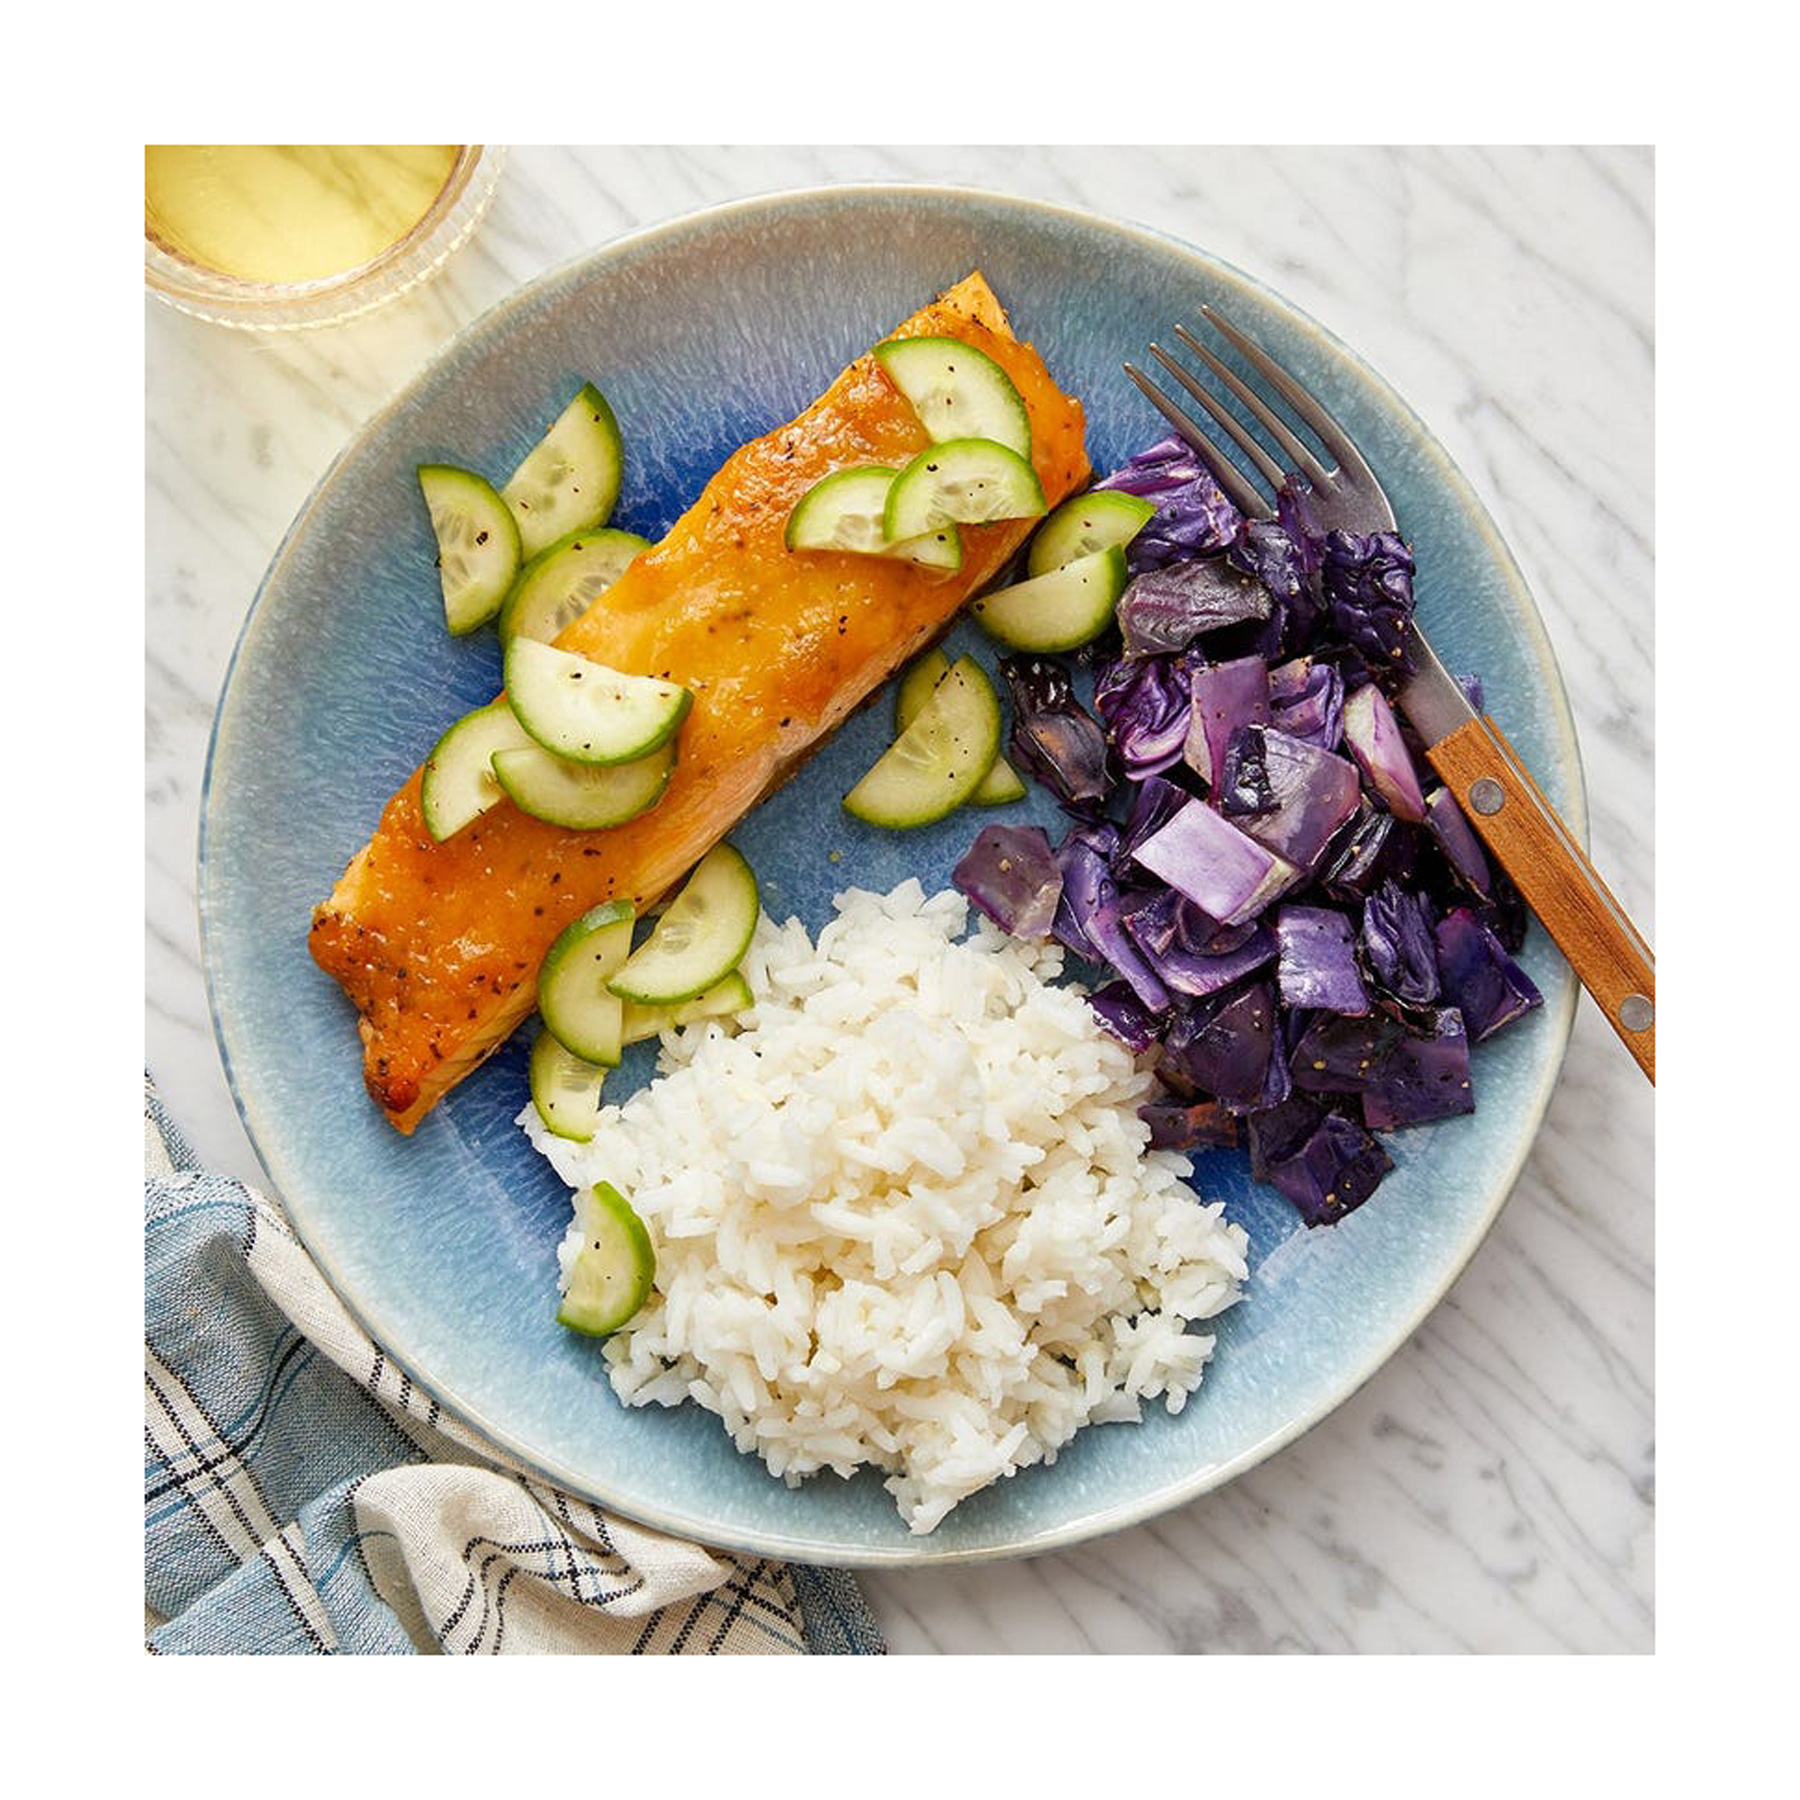 Engagement Gifts Ideas: Blue Apron meal delivery kit subscription